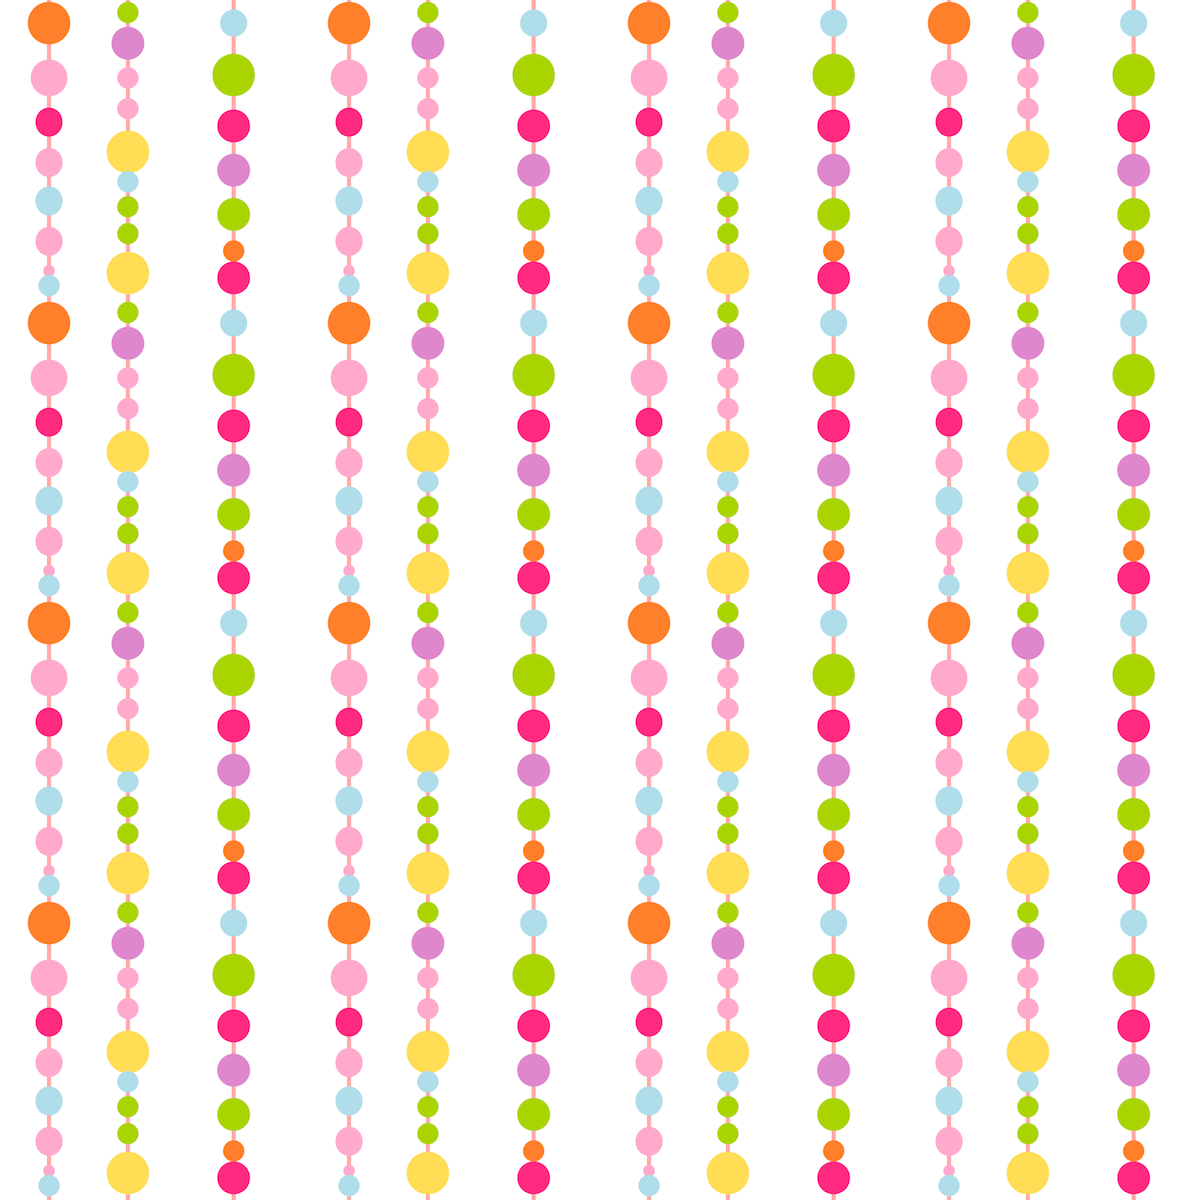 Free digital happily colored scrapbooking paper ausdruckbares